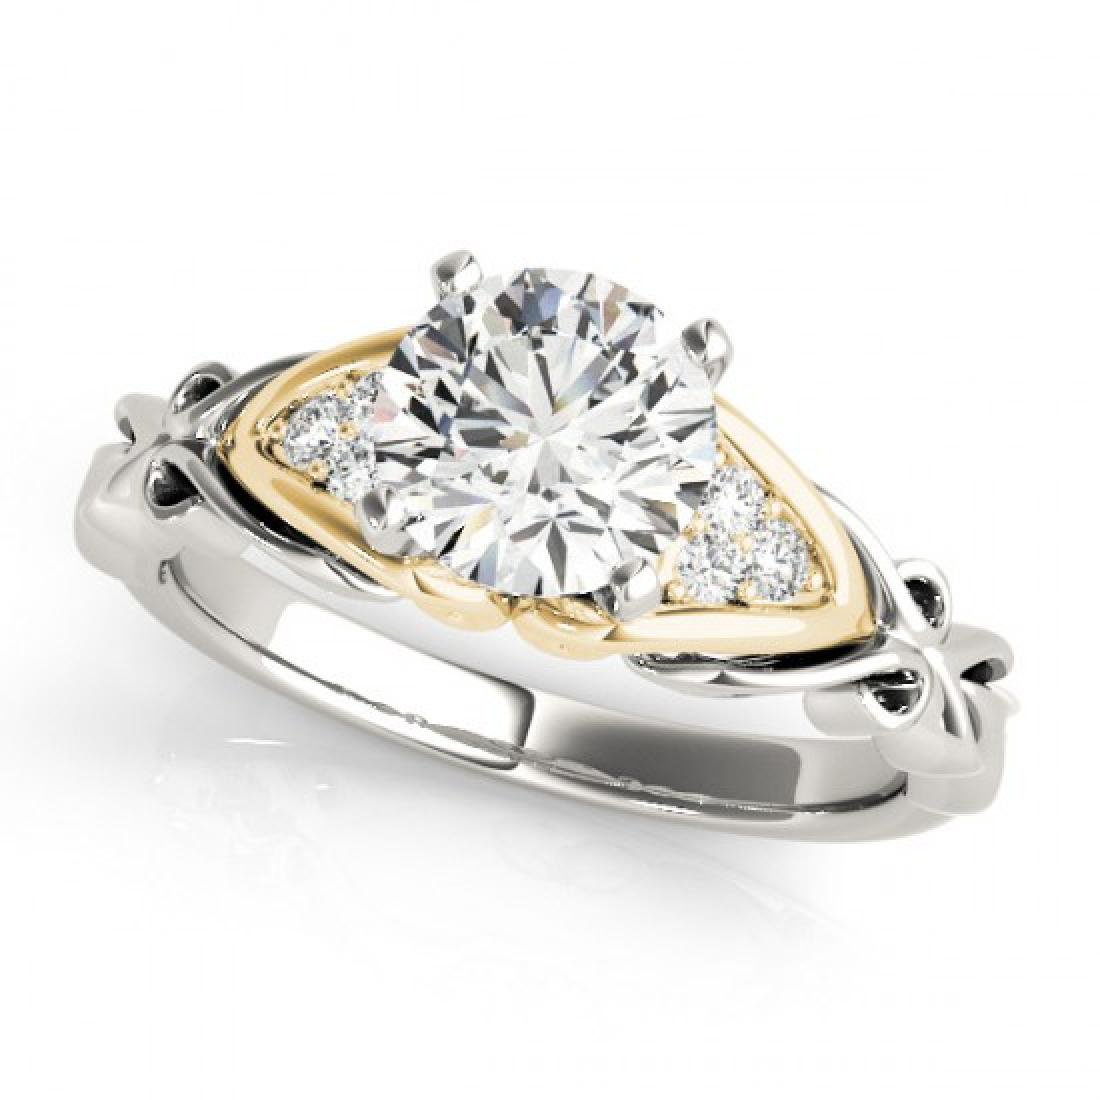 1.1 CTW Certified VS/SI Diamond Solitaire Ring 14K